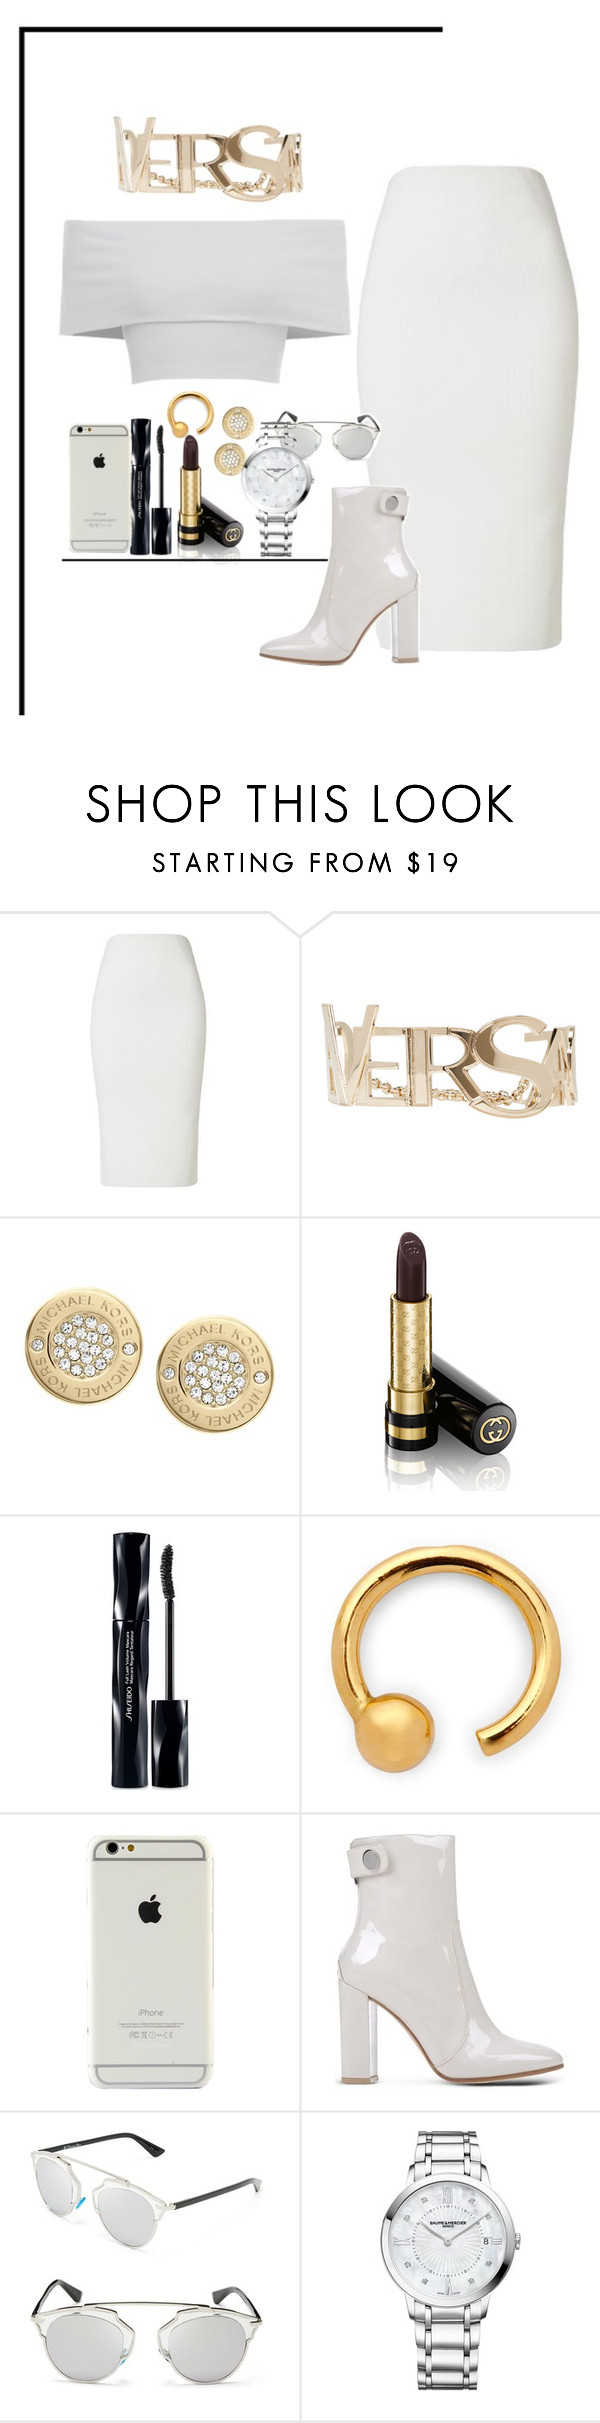 """""""Love birds chirping at thewindow but I don't need love no more"""" by jessionfleekdafuq ❤ liked on Polyvore featuring Versace, Michael Kors, Gucci, Shiseido, Gianvito Rossi, Christian Dior, Baume & Mercier and versace"""